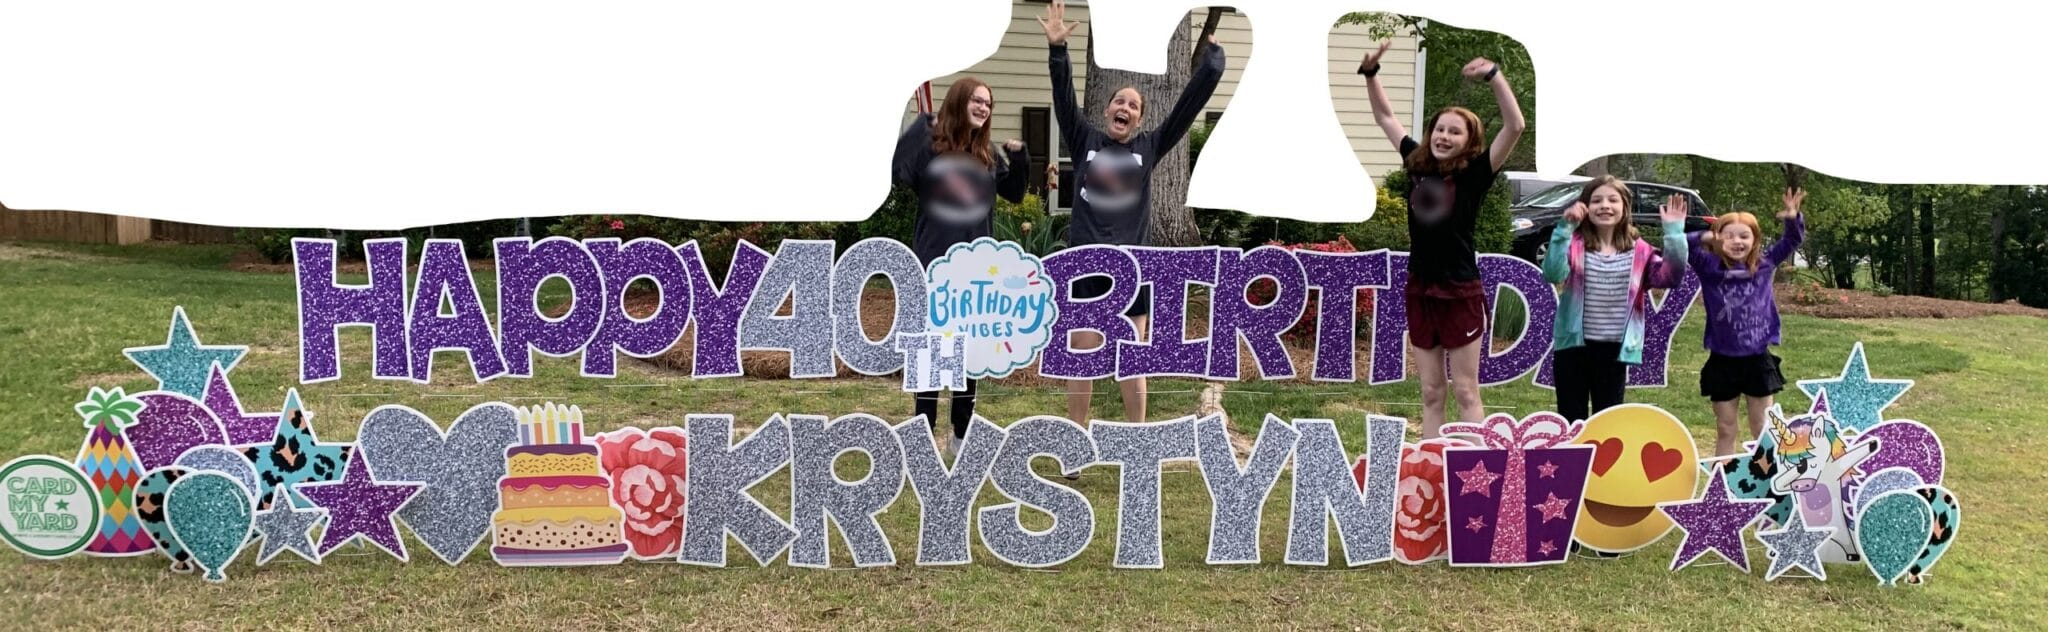 40th birthday mommy and me monday yard sign with the girls